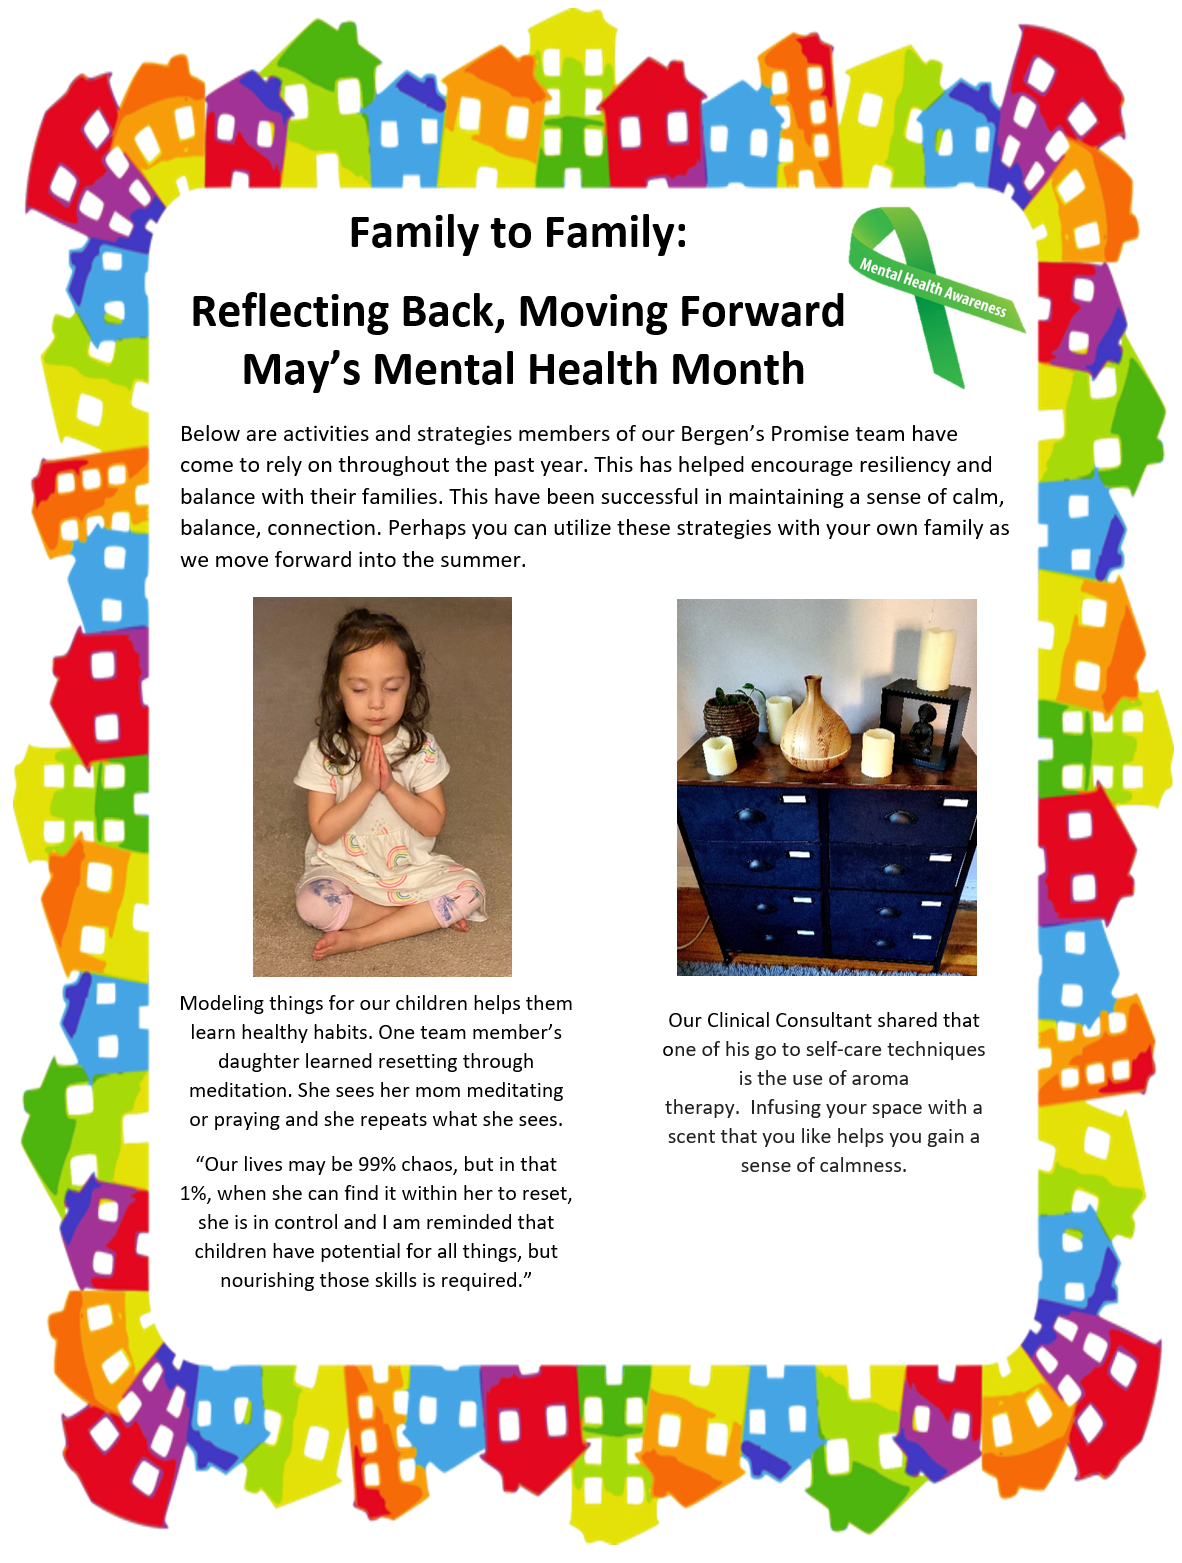 Family to Family: Reflecting Back, Moving Forward, May's Mental Health Month